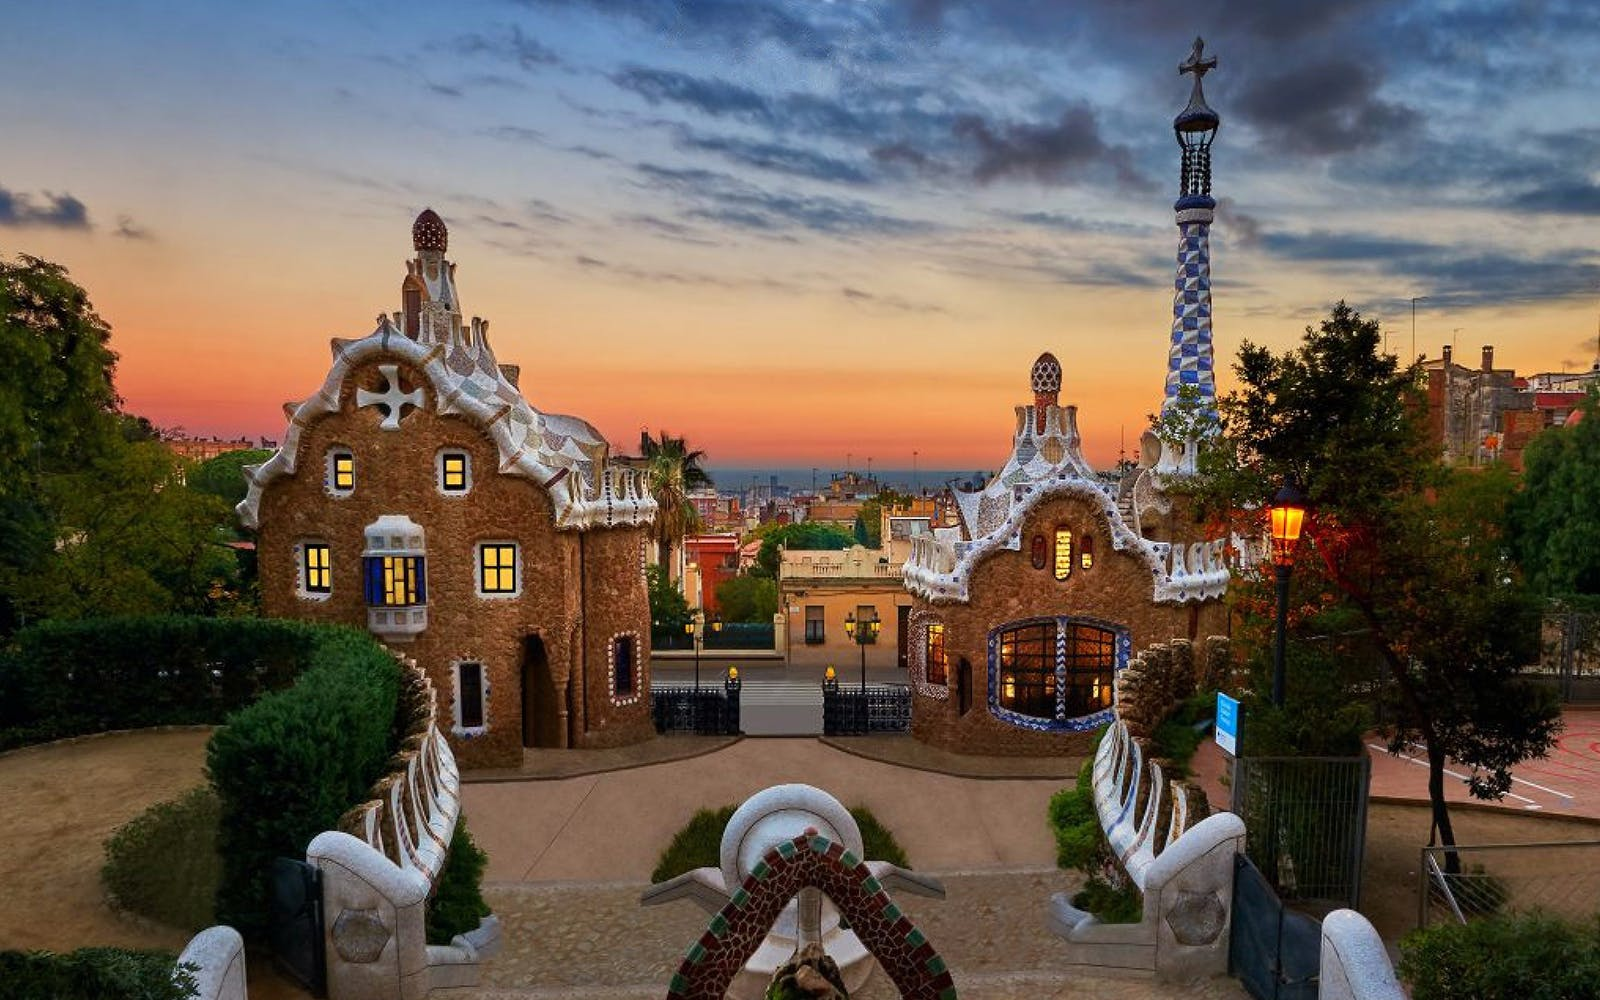 guided tour of sagrada familia and park güell with fast track entry access-2